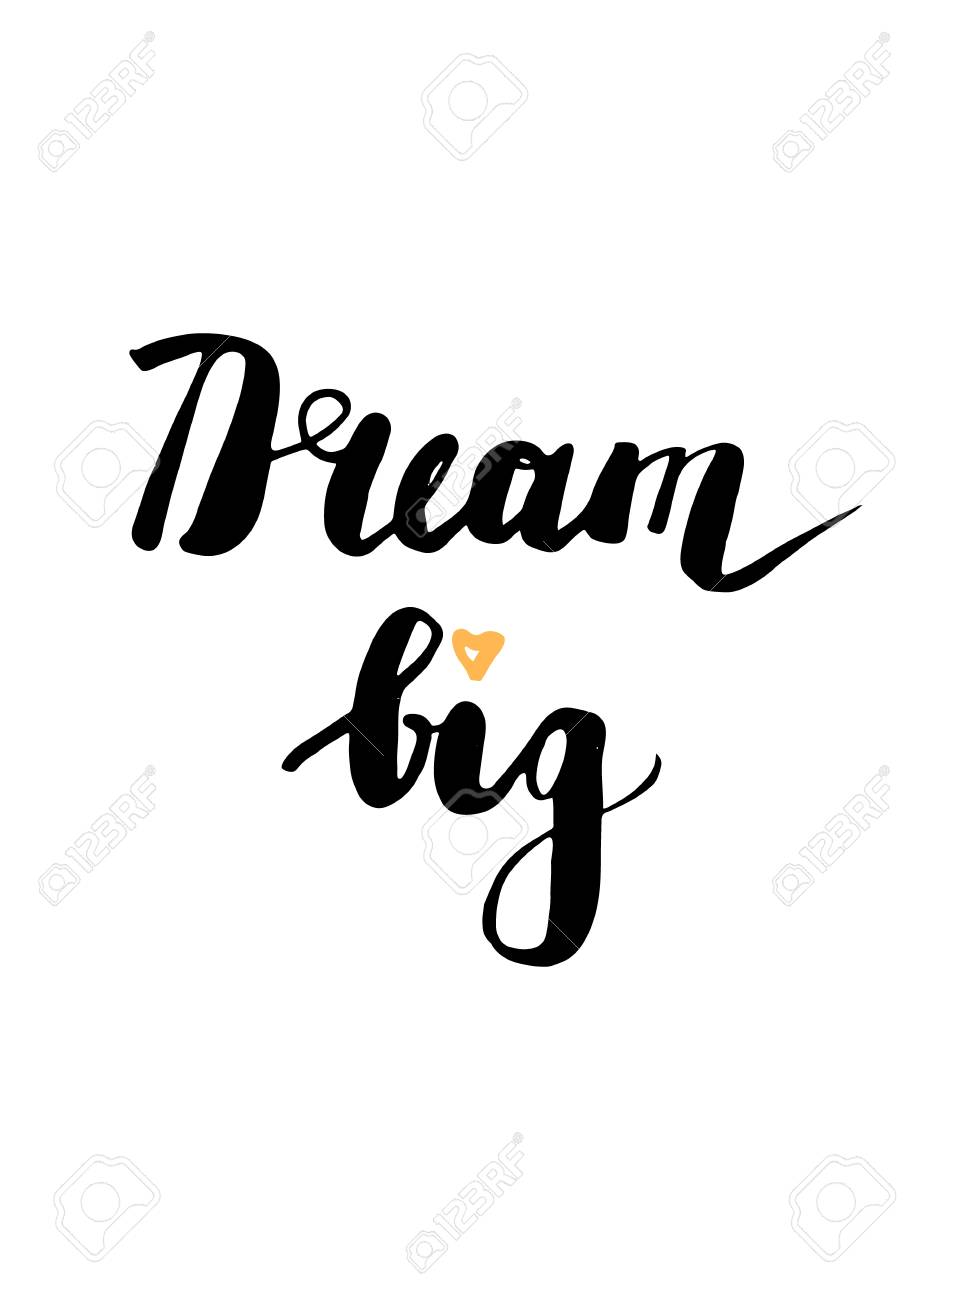 133+ Inspirational Dreams Quotes and Sayings (With Images)